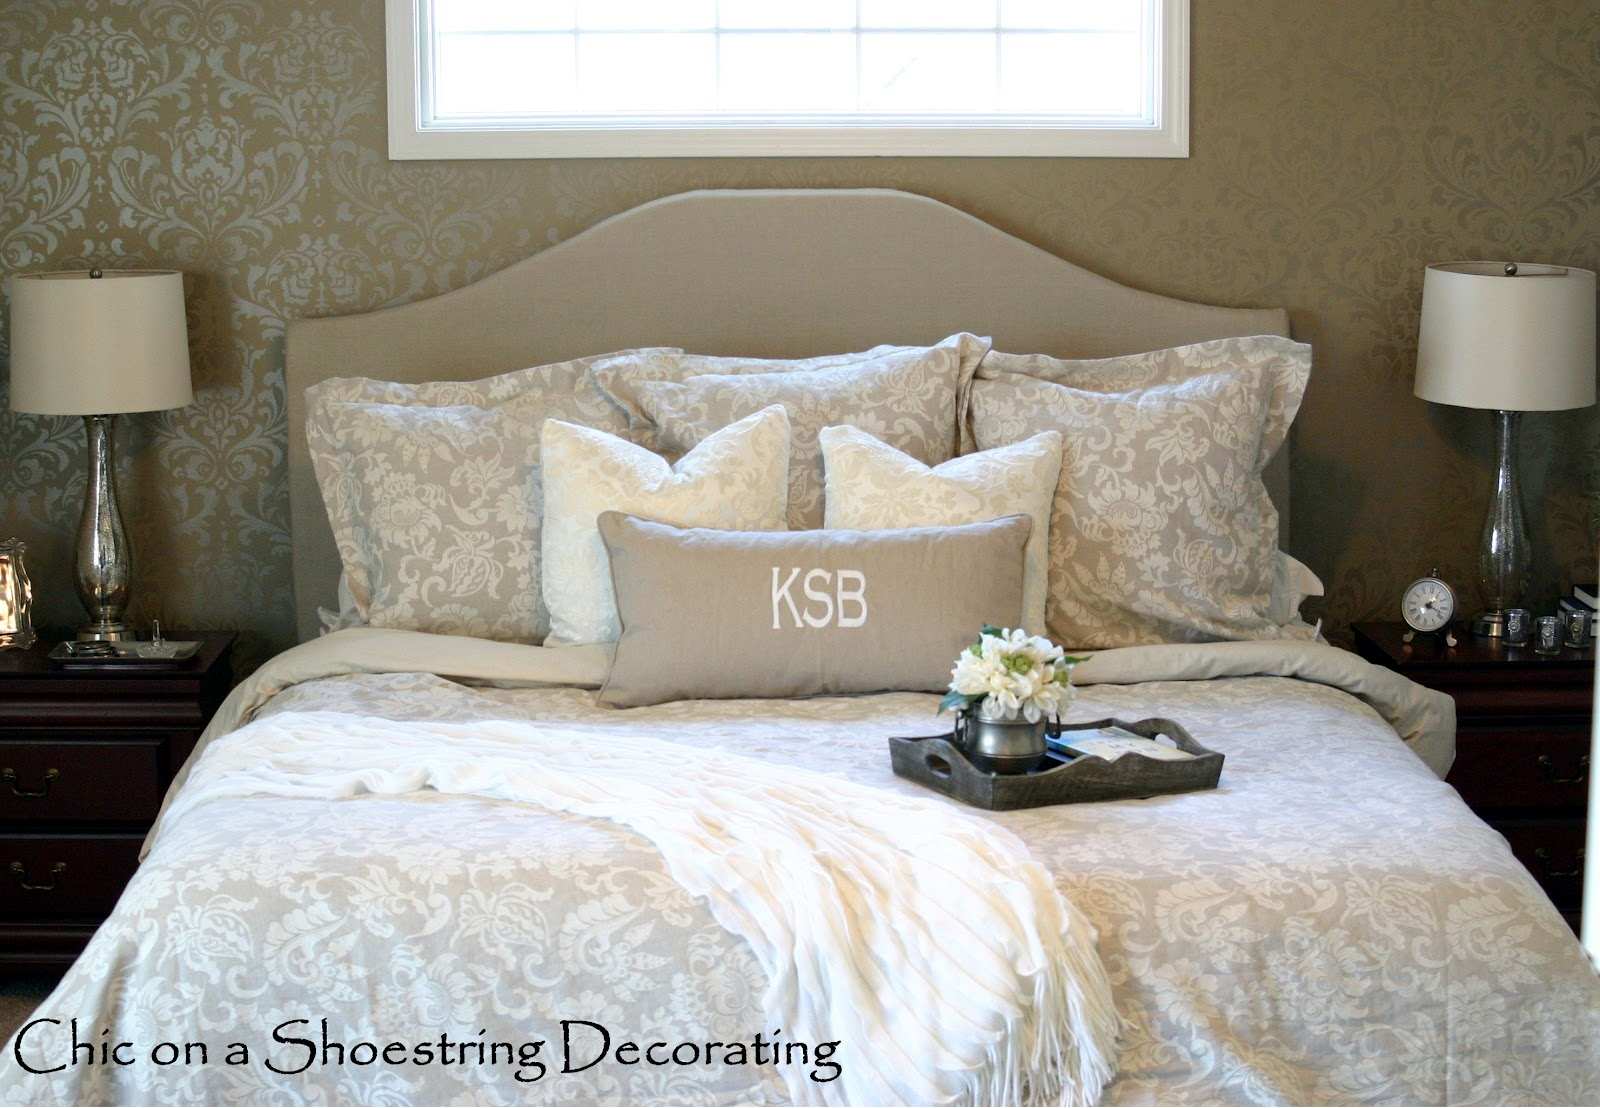 Chic on a shoestring decorating neutral master bedroom reveal for Master bedroom images